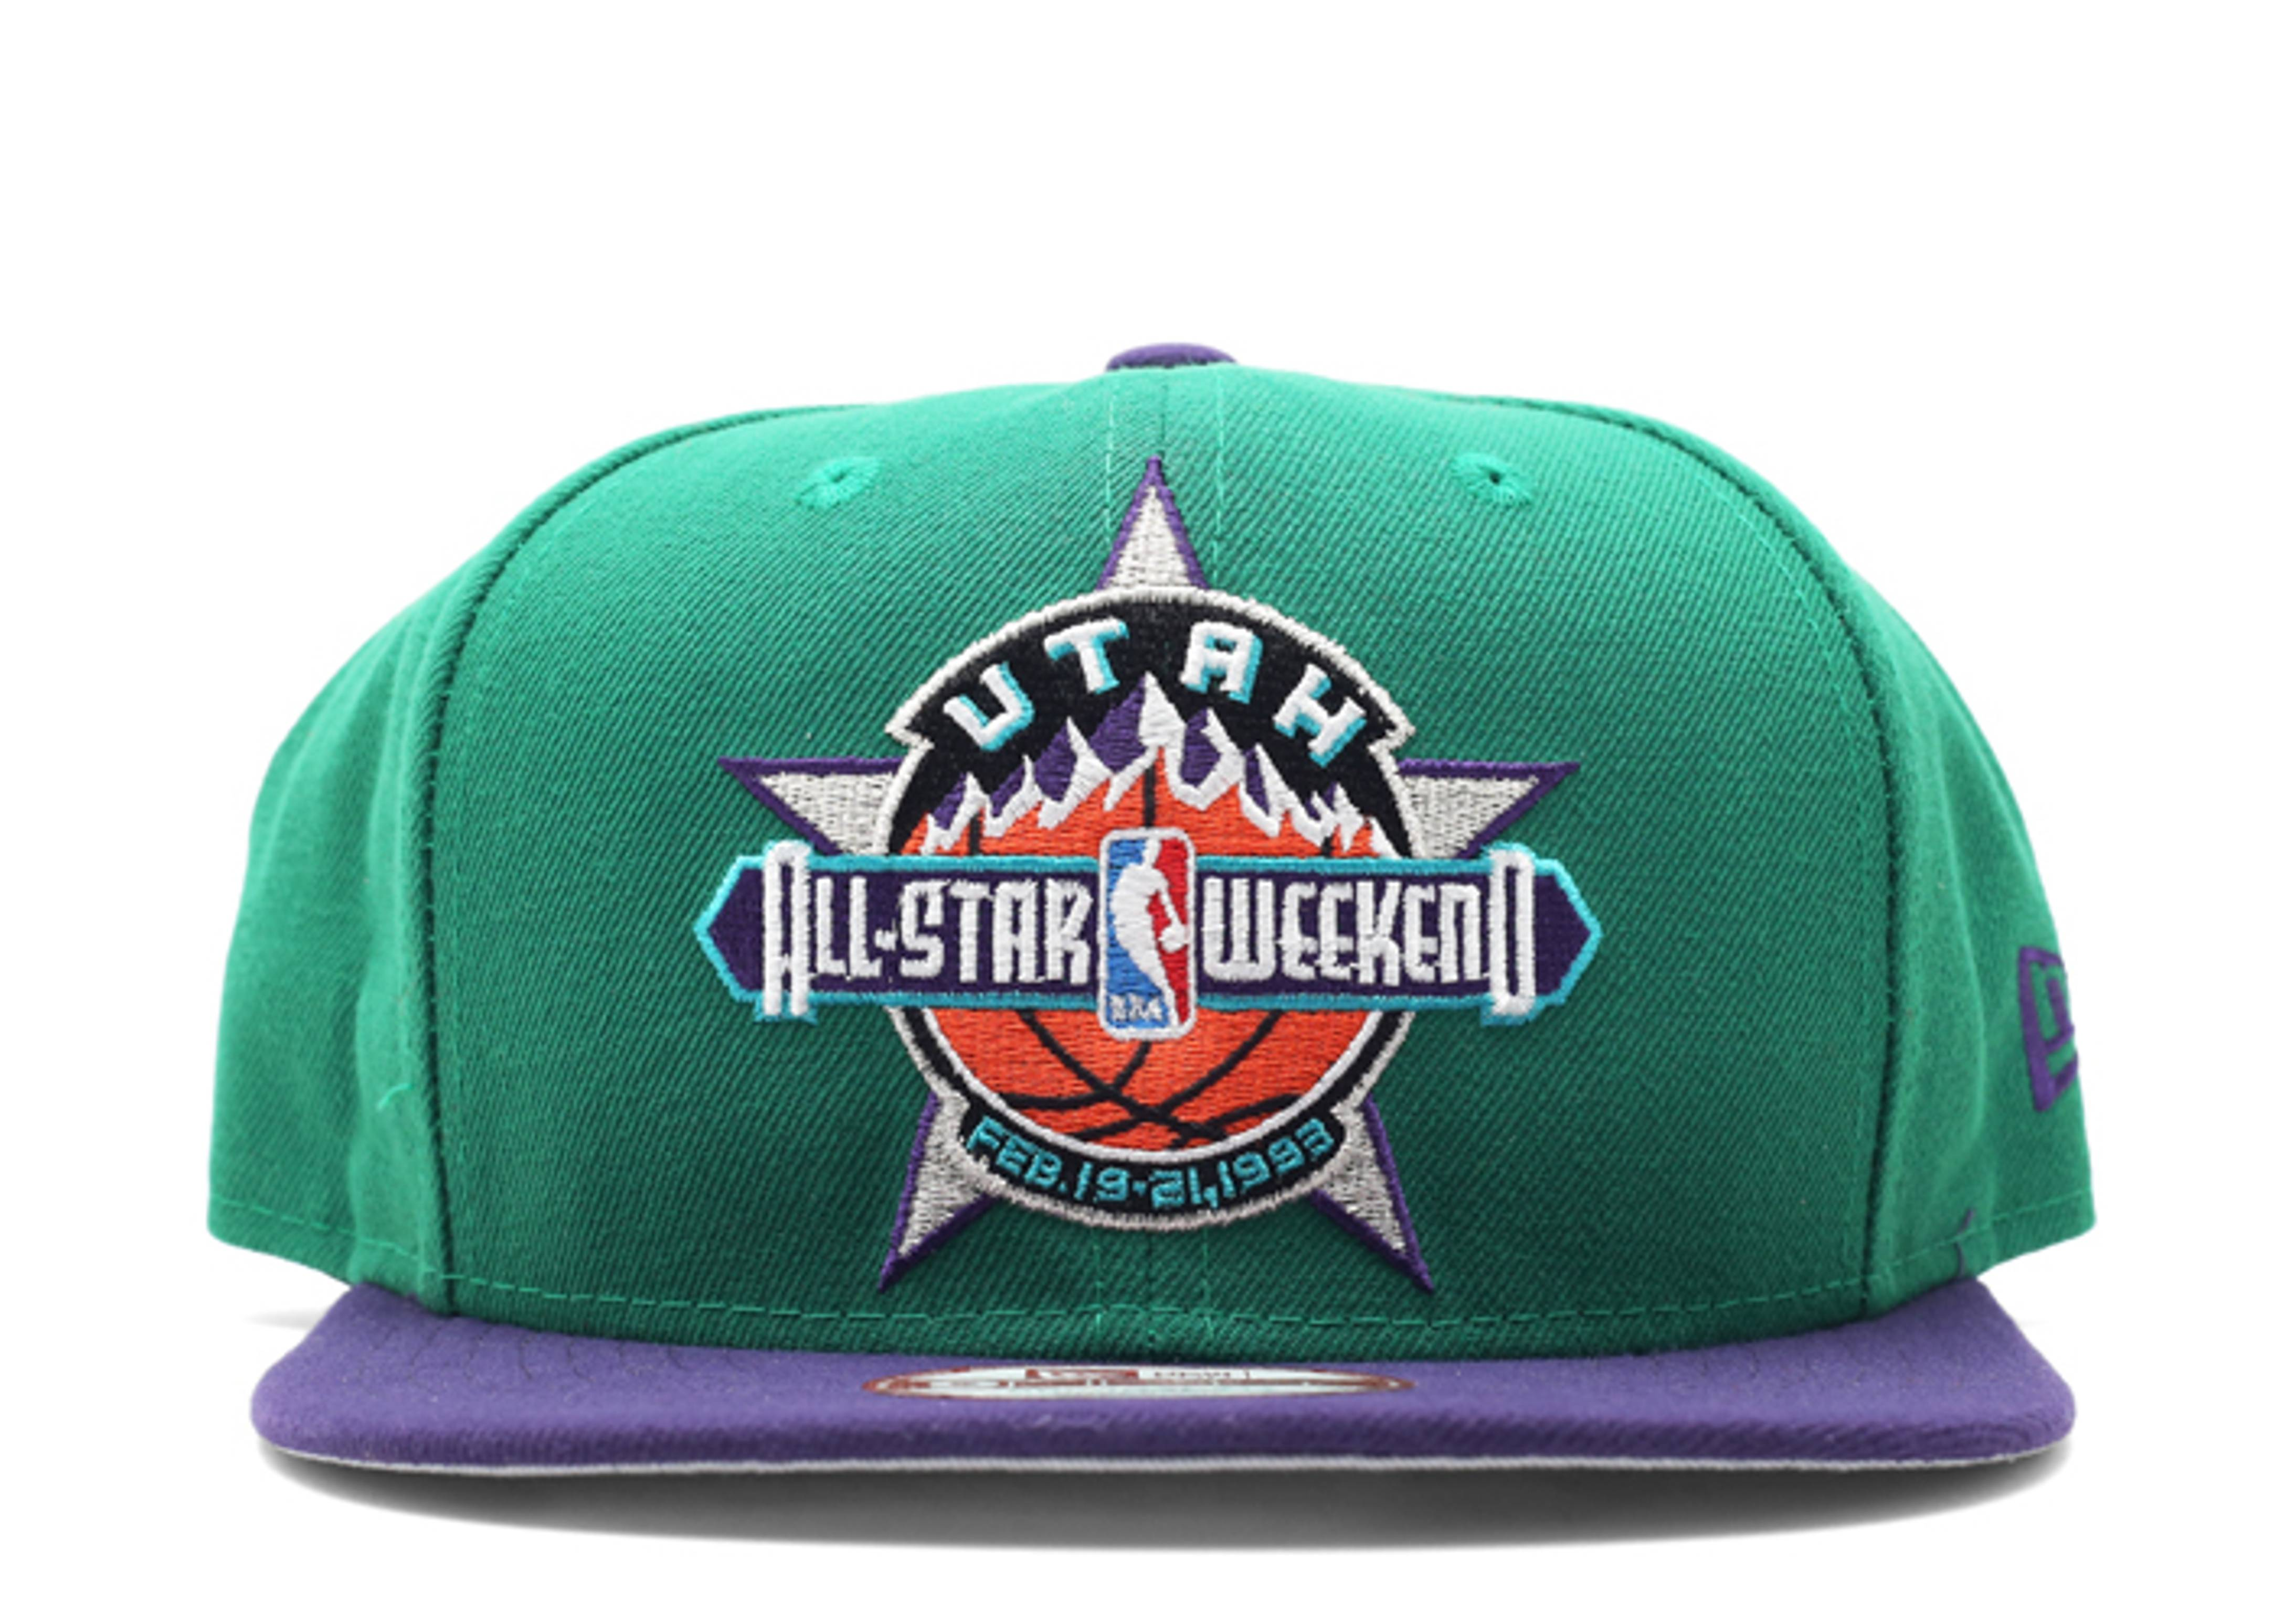 1993 all star weekend snap-back